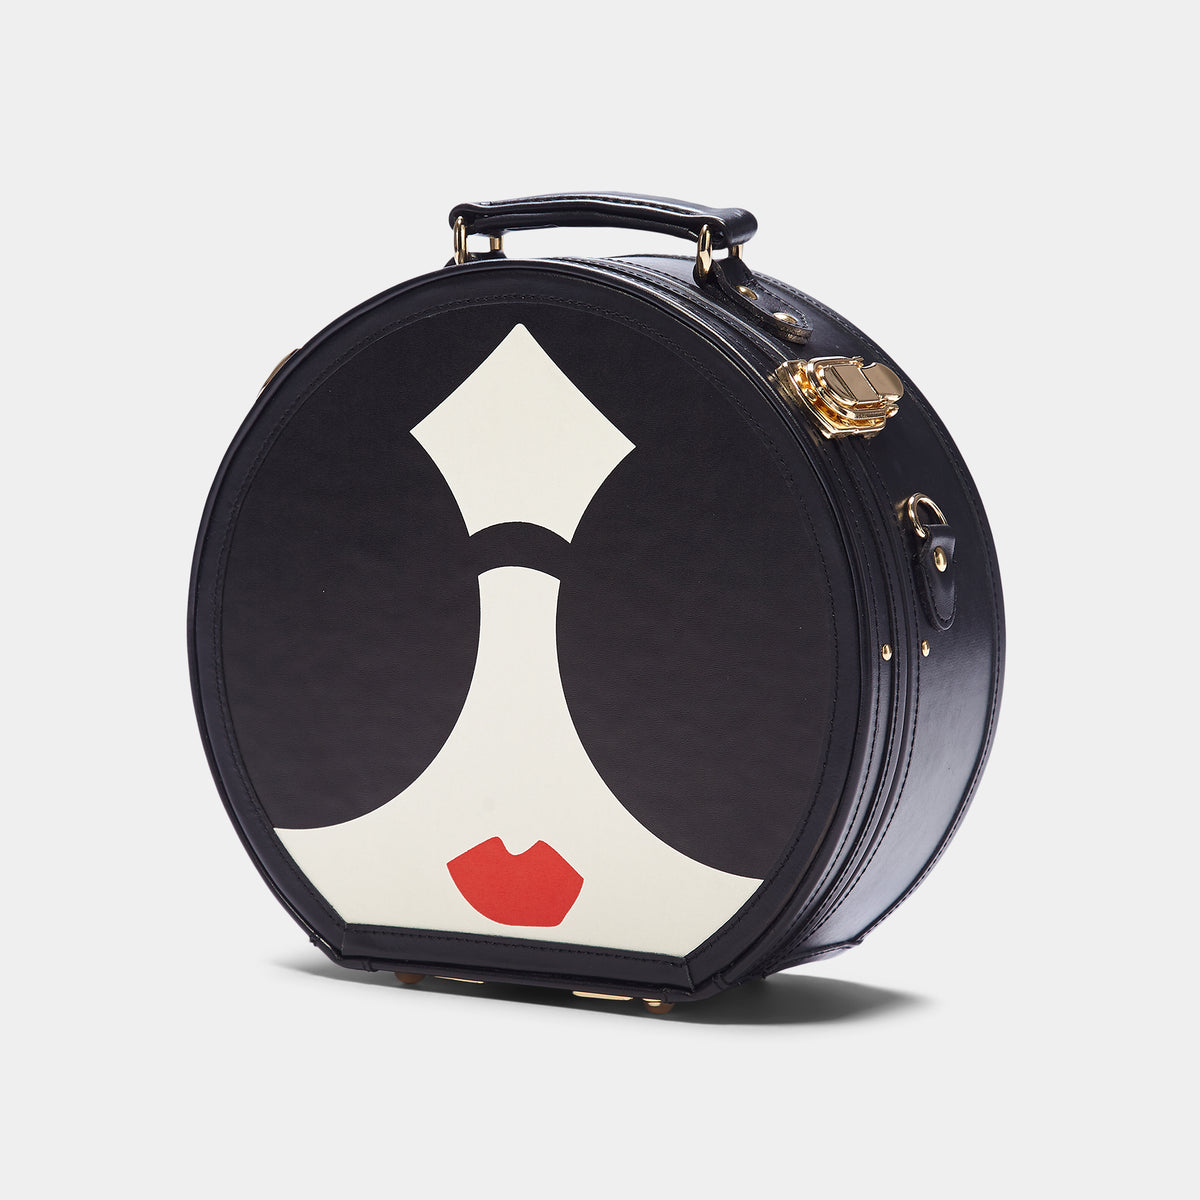 The alice + olivia X SteamLine in Black - Hat Box Luggage - Exterior Front